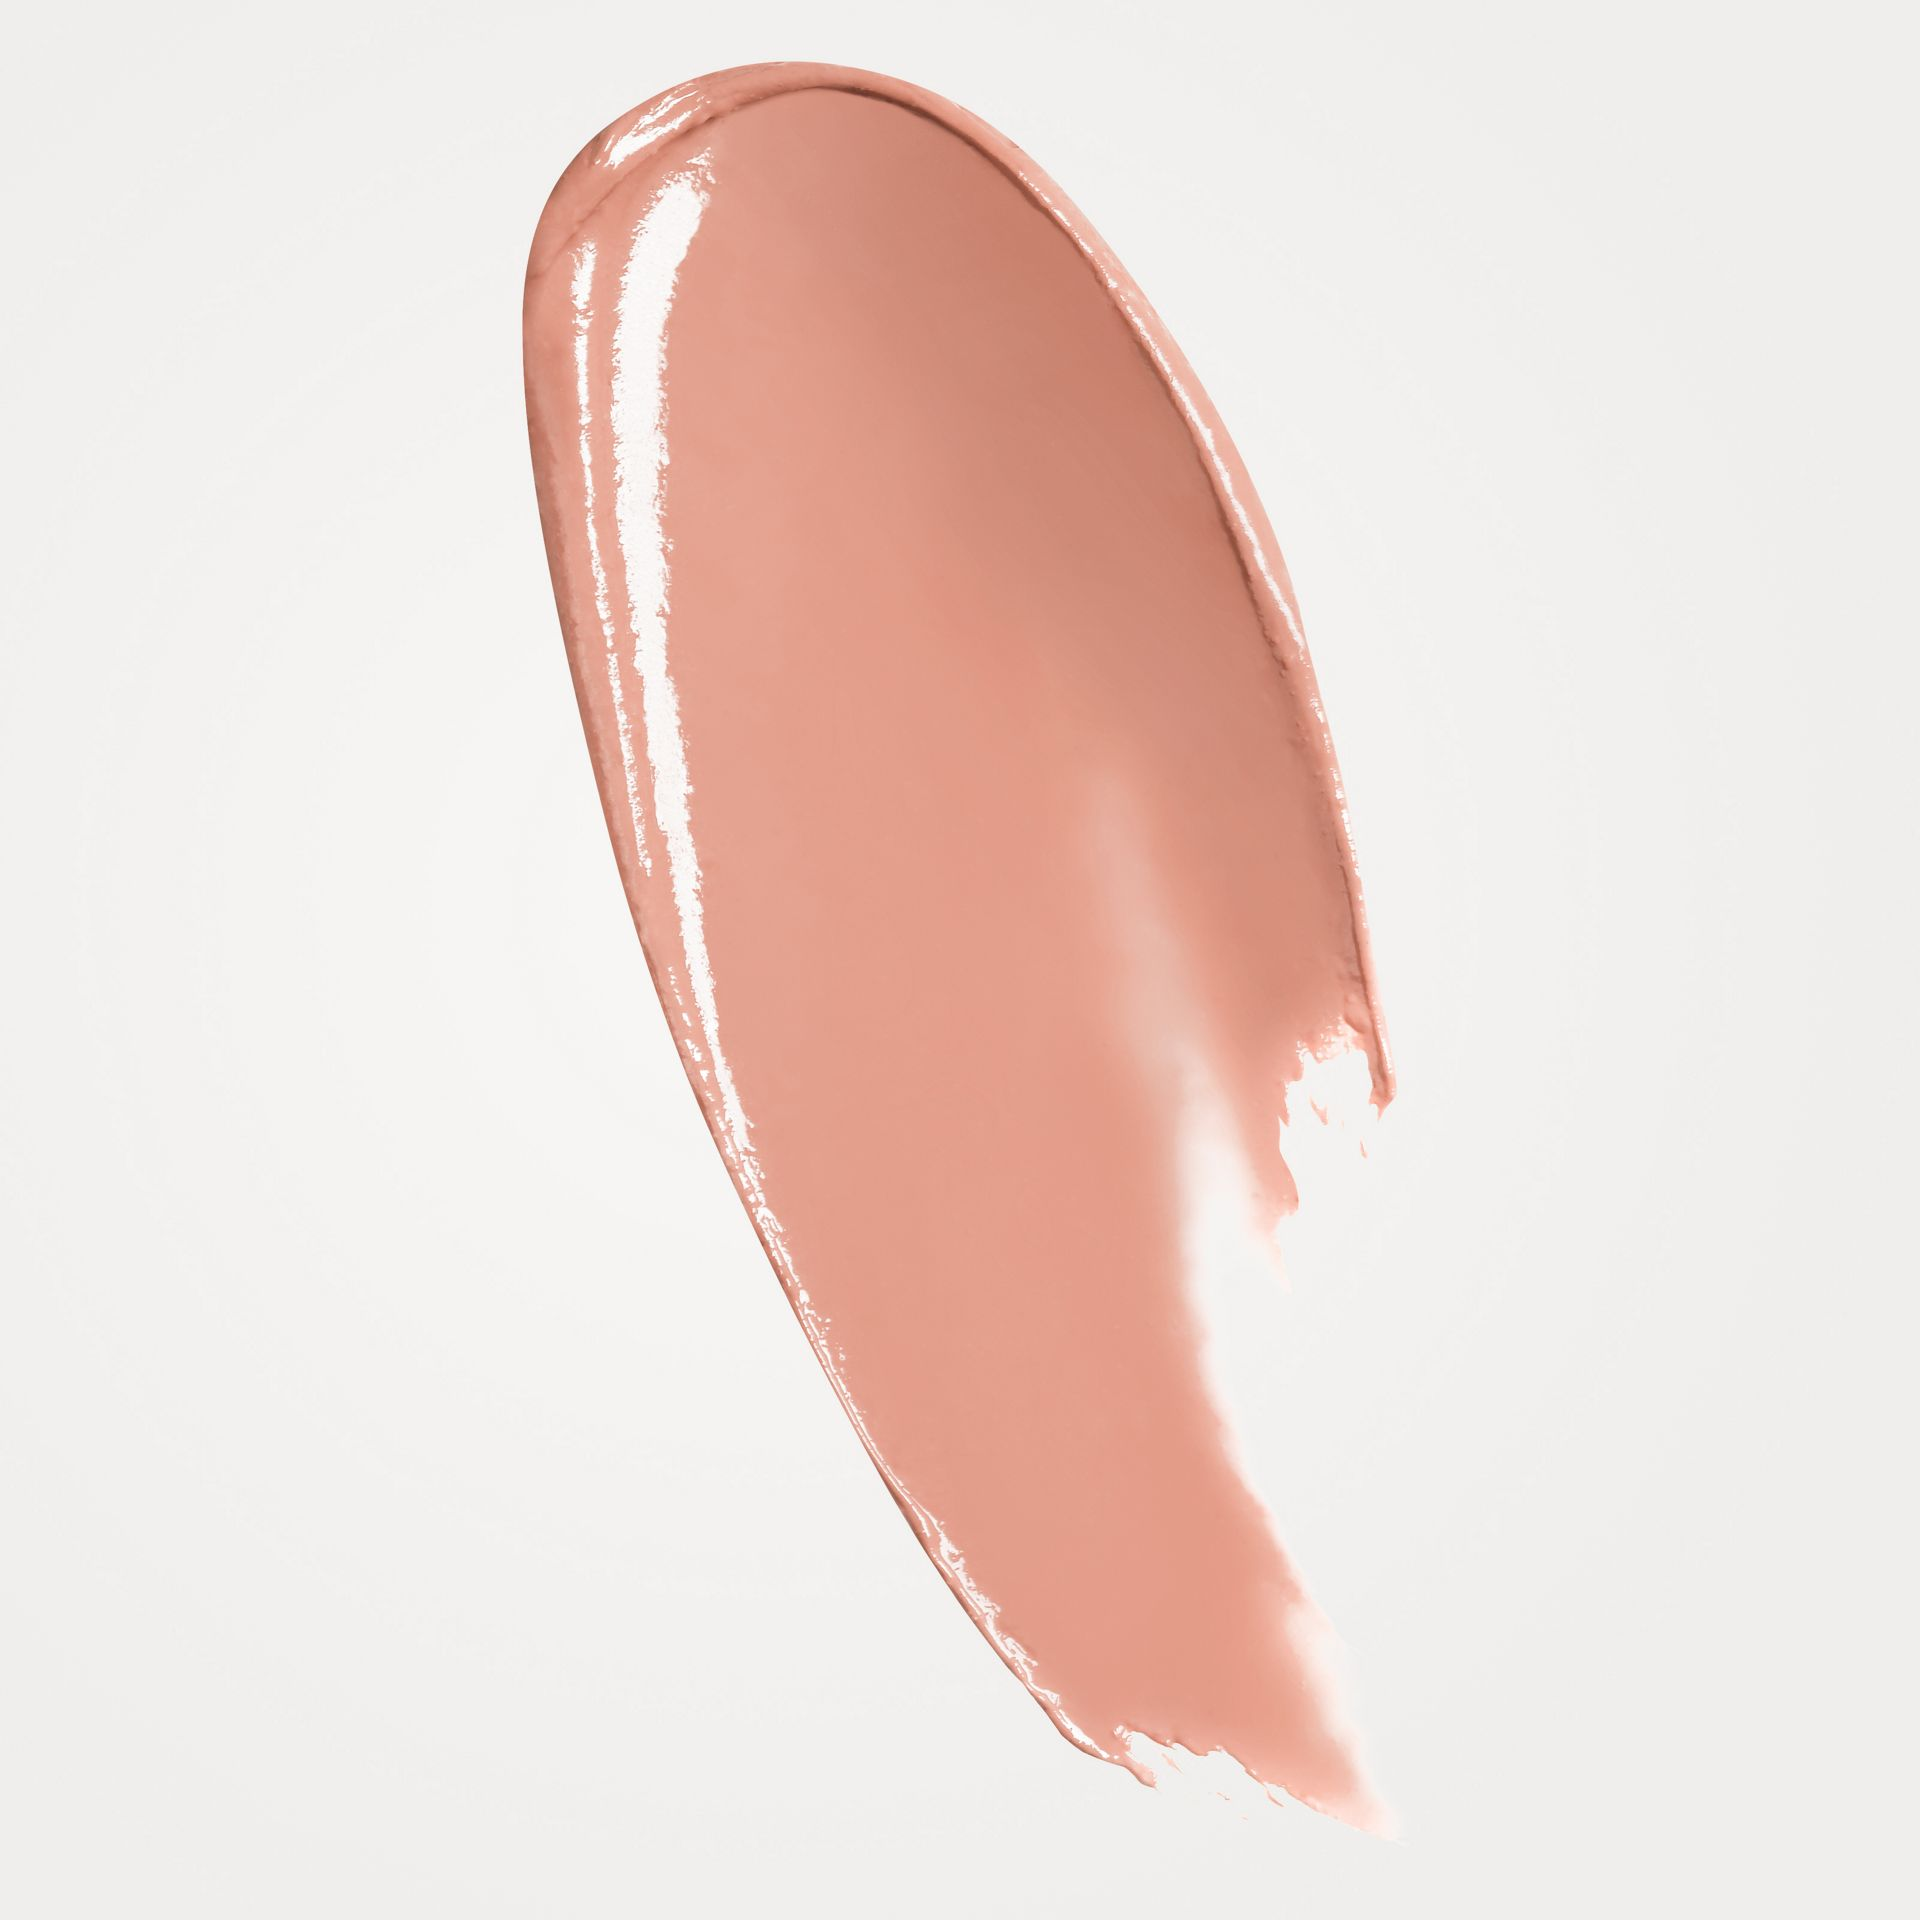 Burberry Full Kisses – Nude Blush No.501 - Galerie-Bild 2